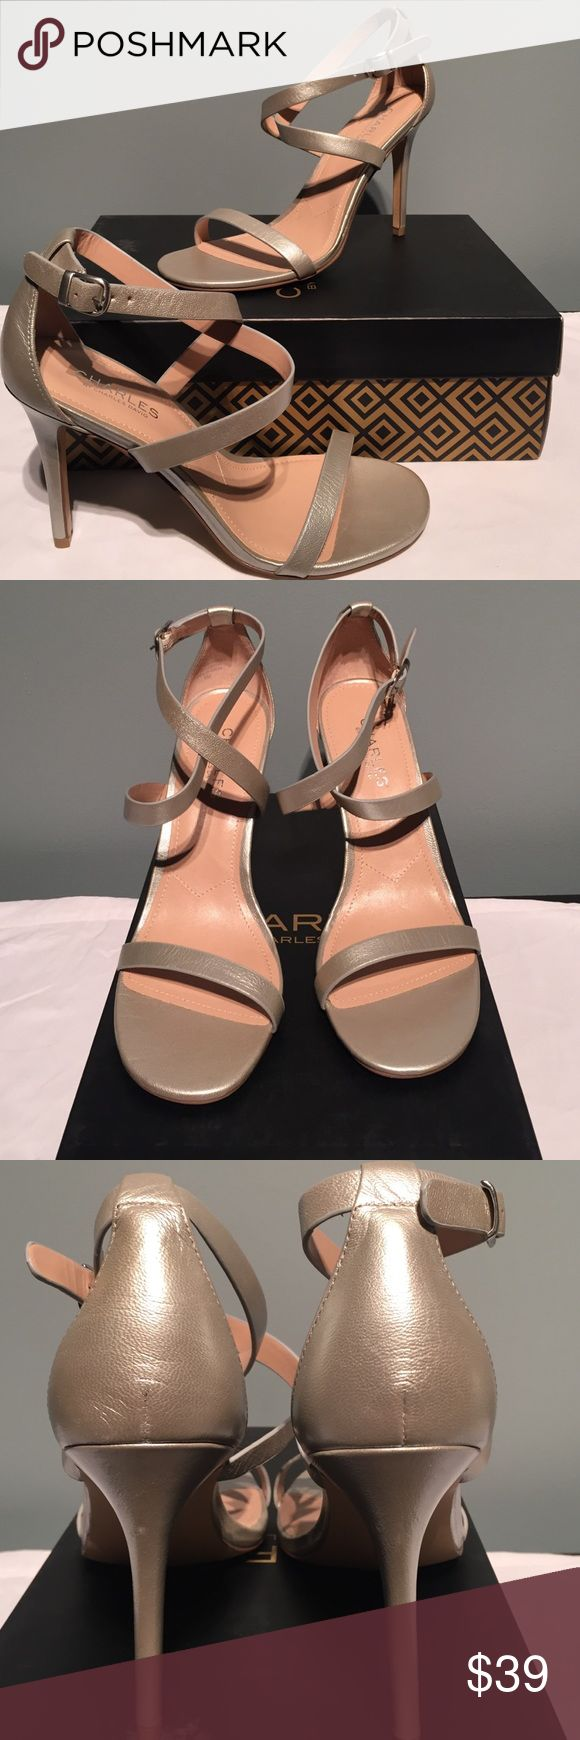 🎈NIB Charles by Charles David🎈 NIB Charles by Charles David silver metallic leather.  Heel is 4 inches.  Thanks for looking! Charles David Shoes Heels